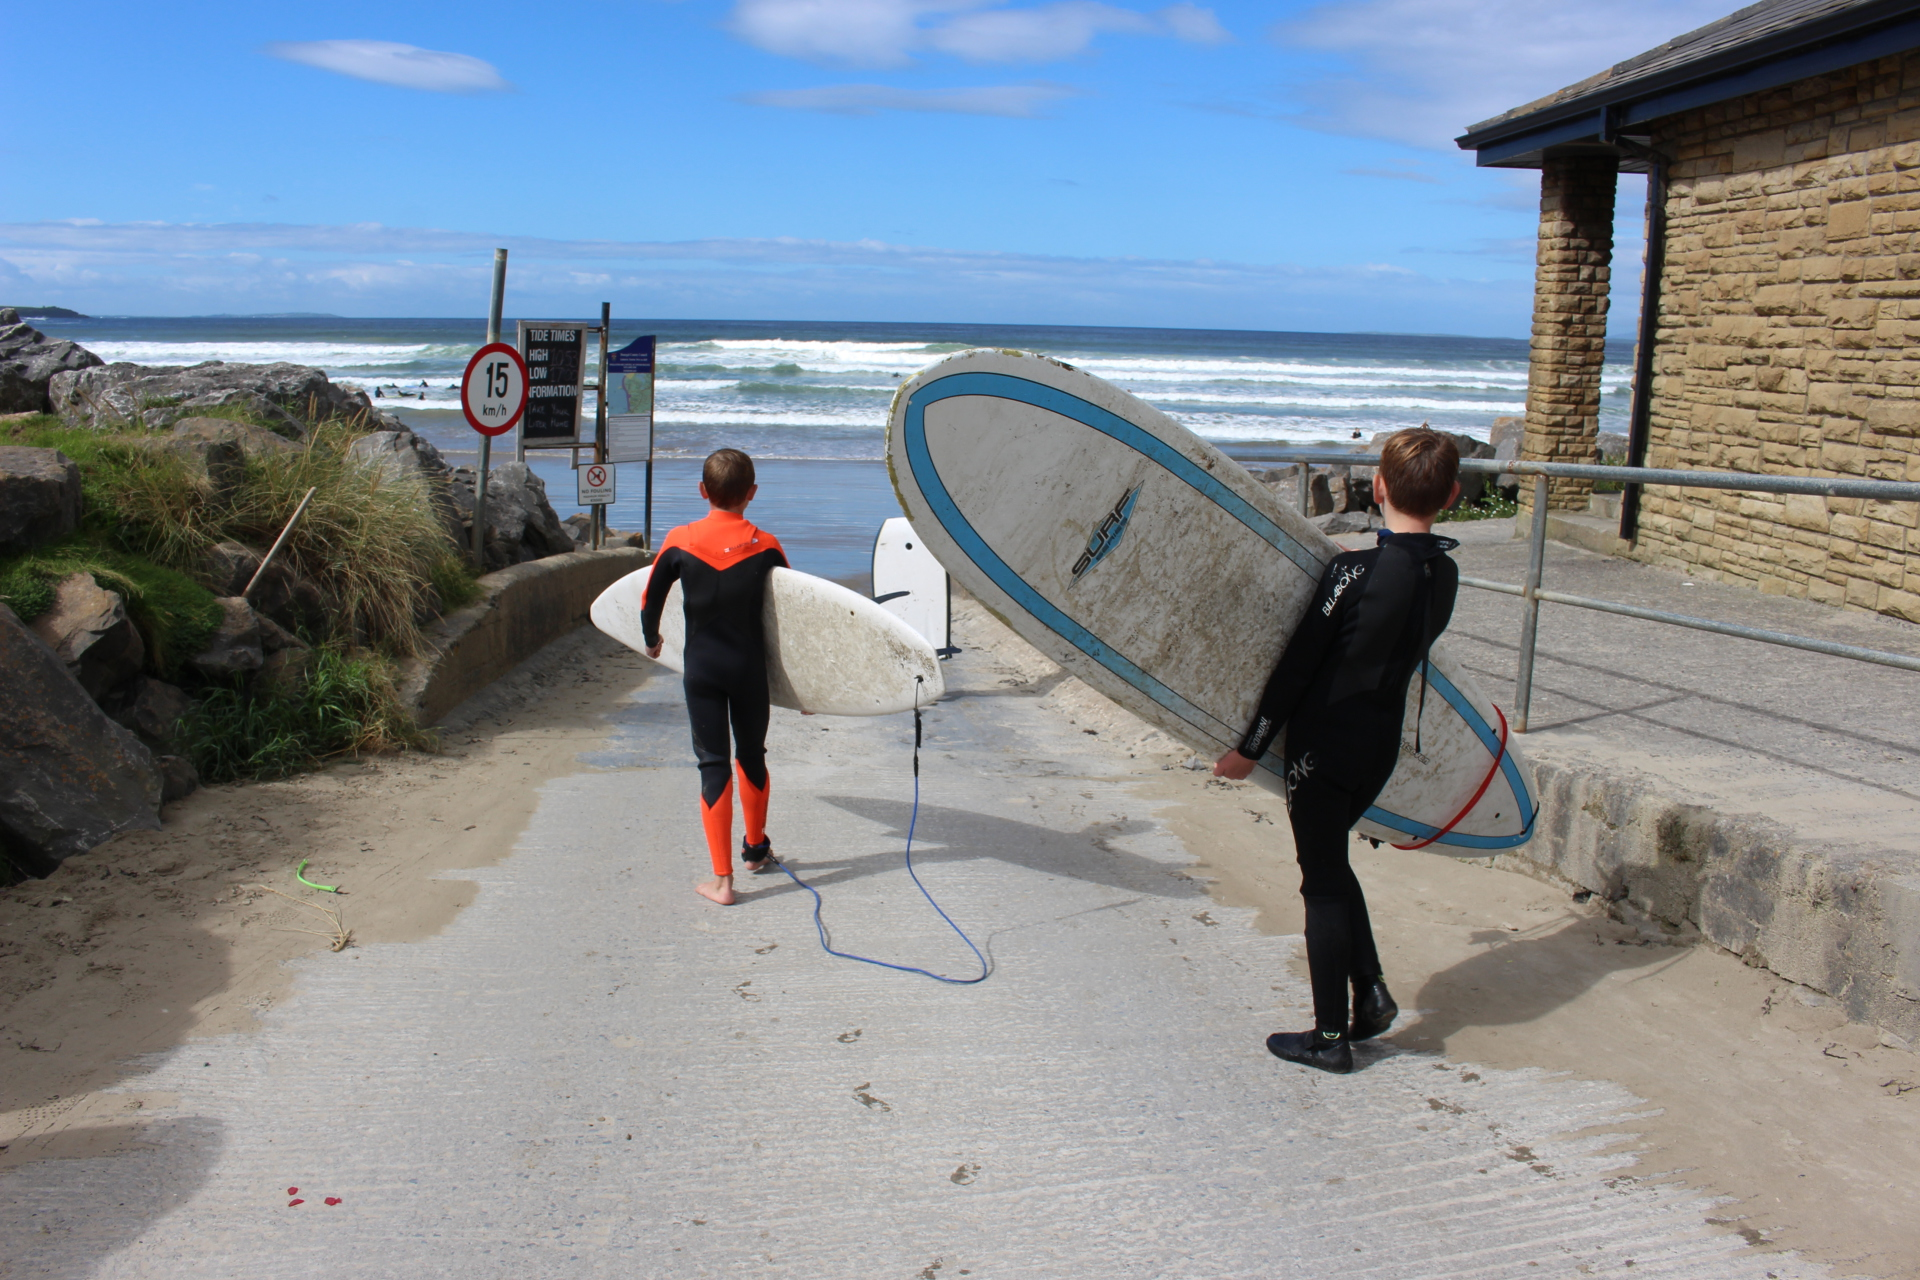 Going Surfing in Rossnowlagh